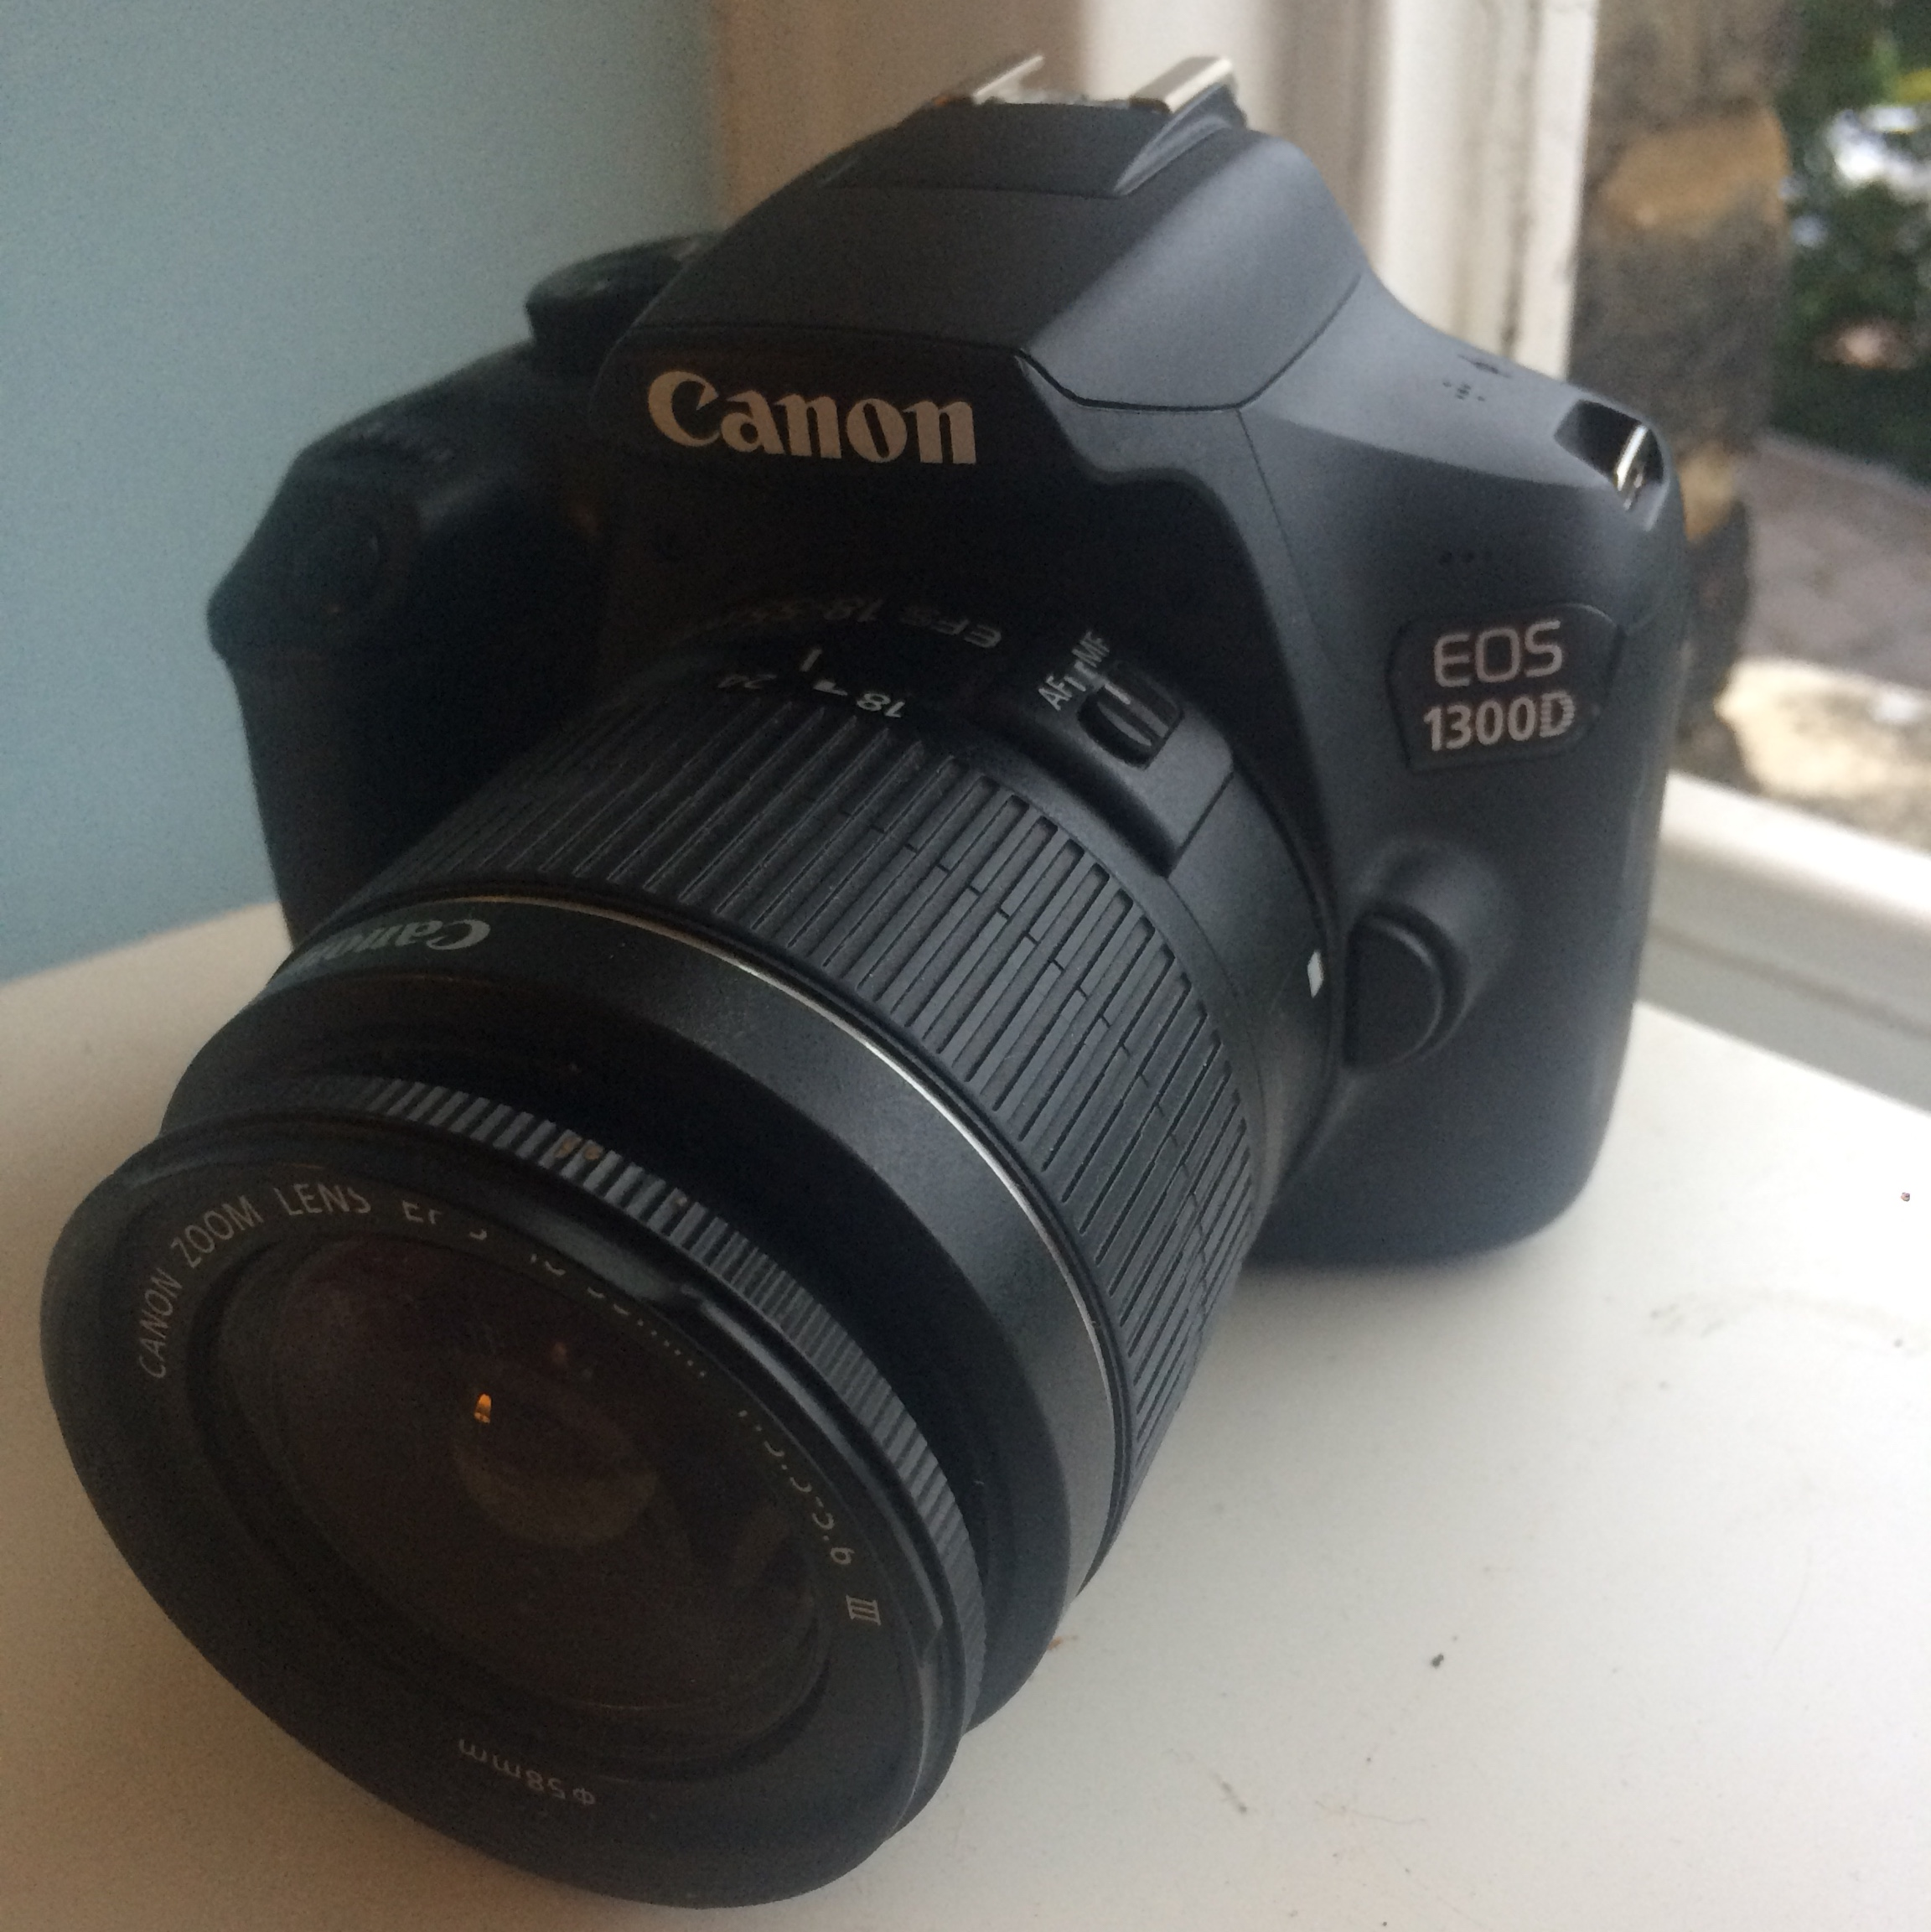 Canon EOS 1300D perfect condition comes with battery